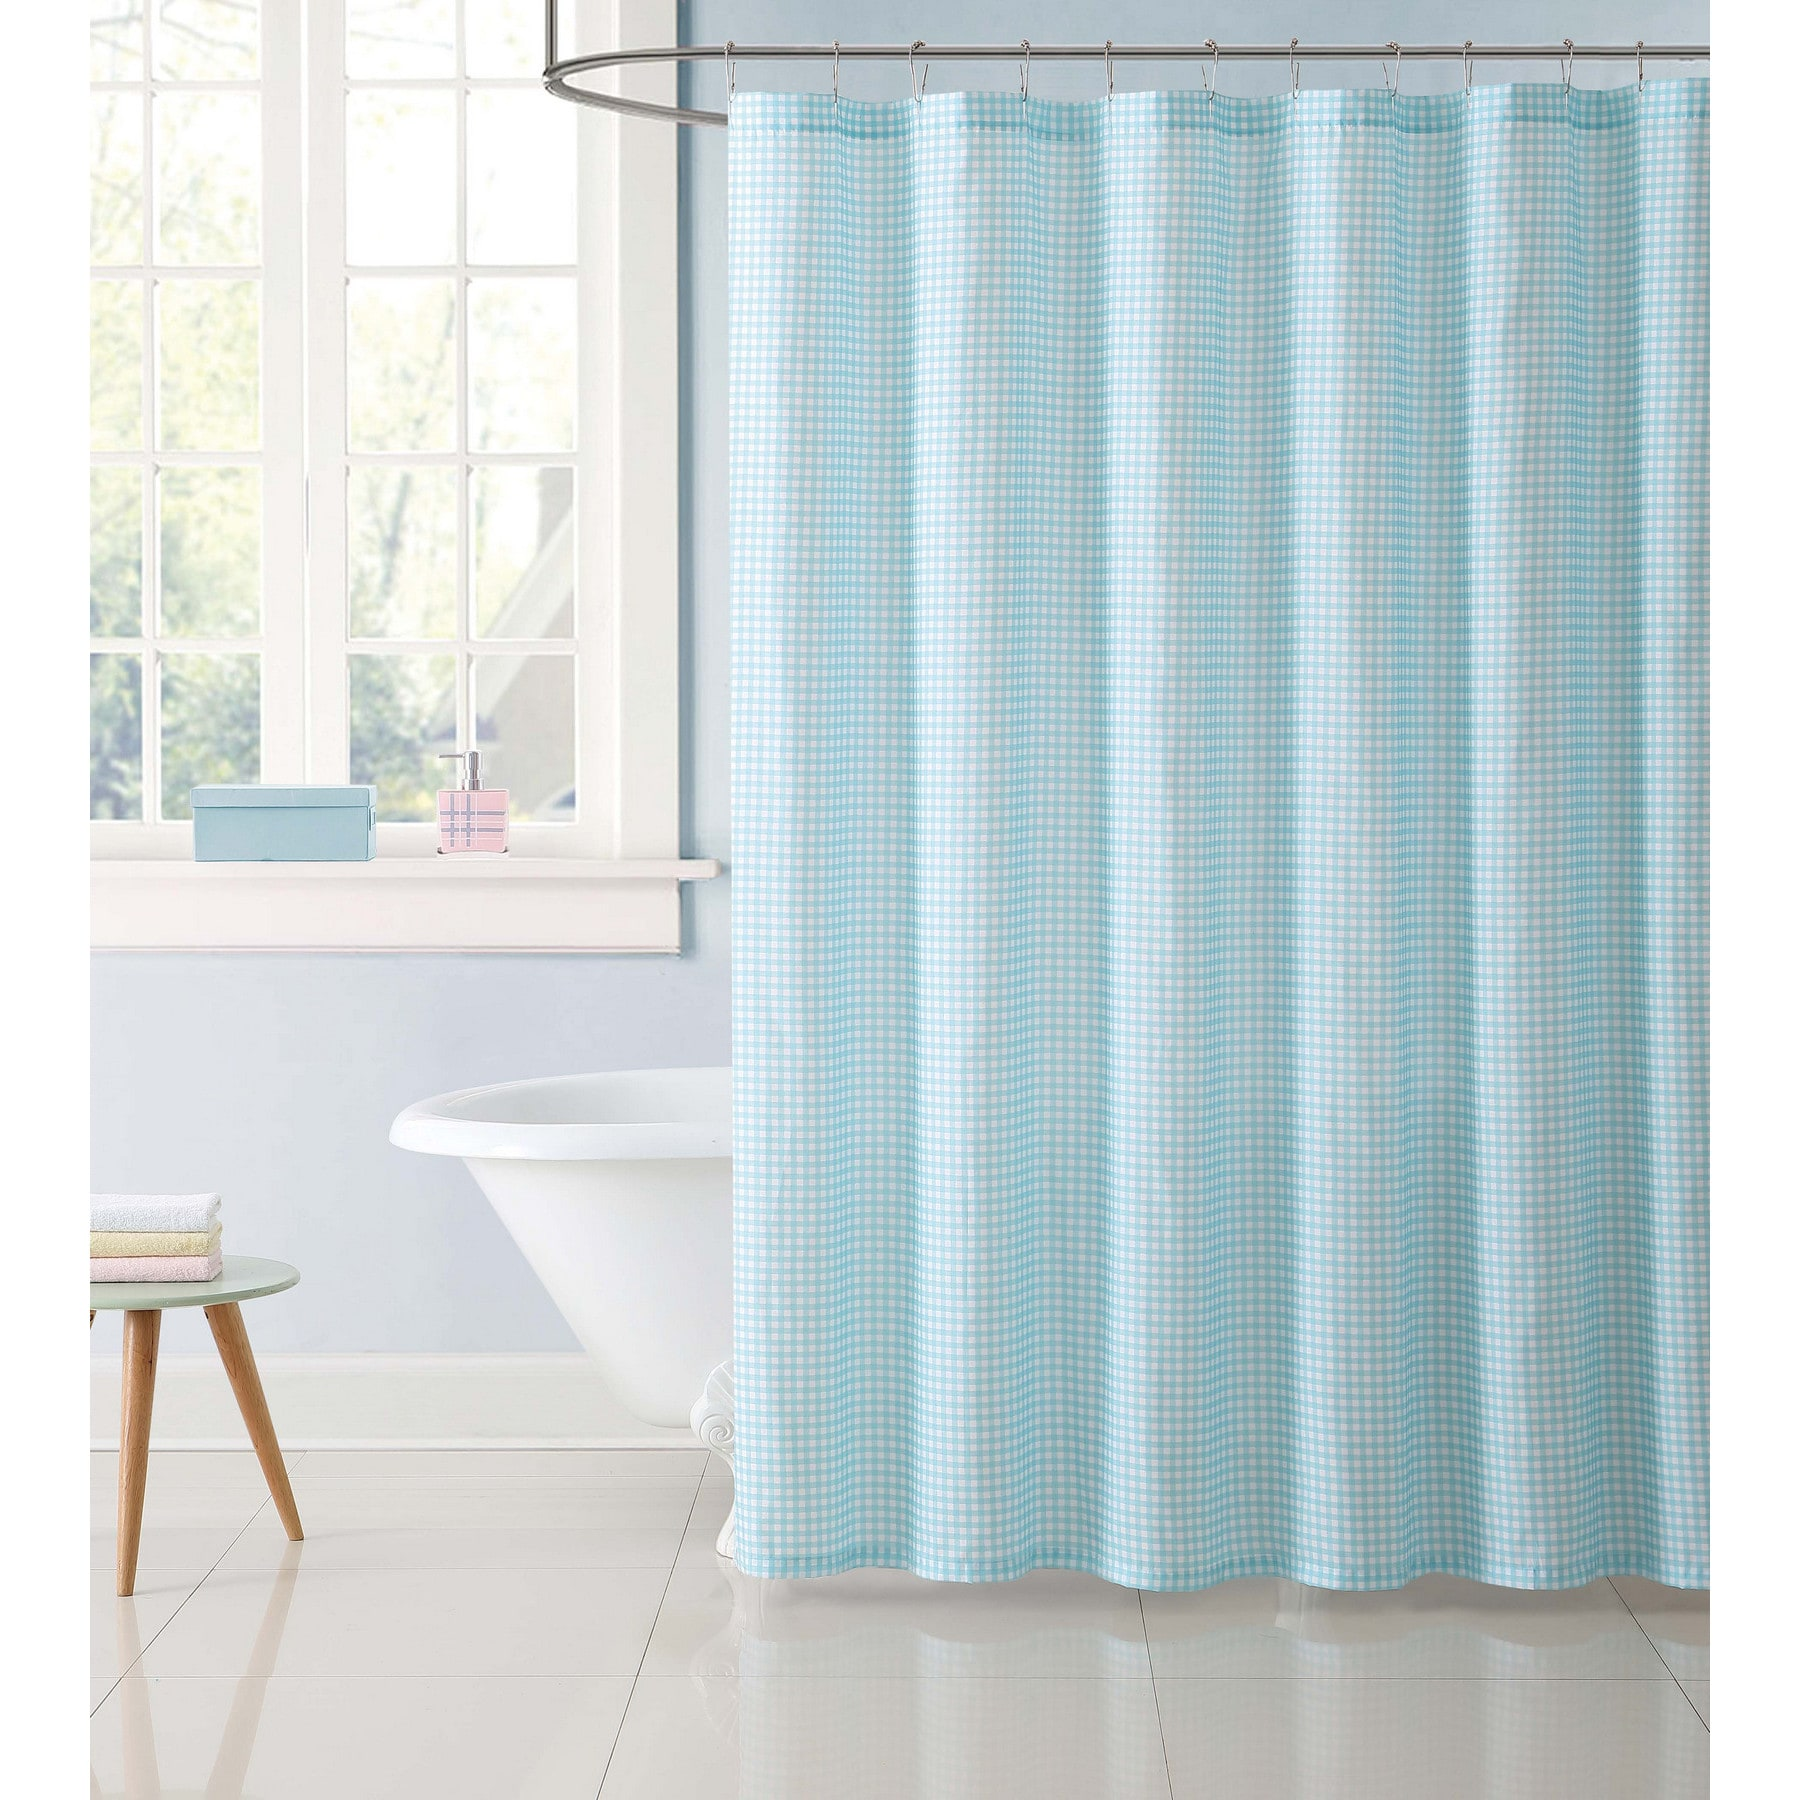 Gingham Shower Curtain by Laura Hart Kids